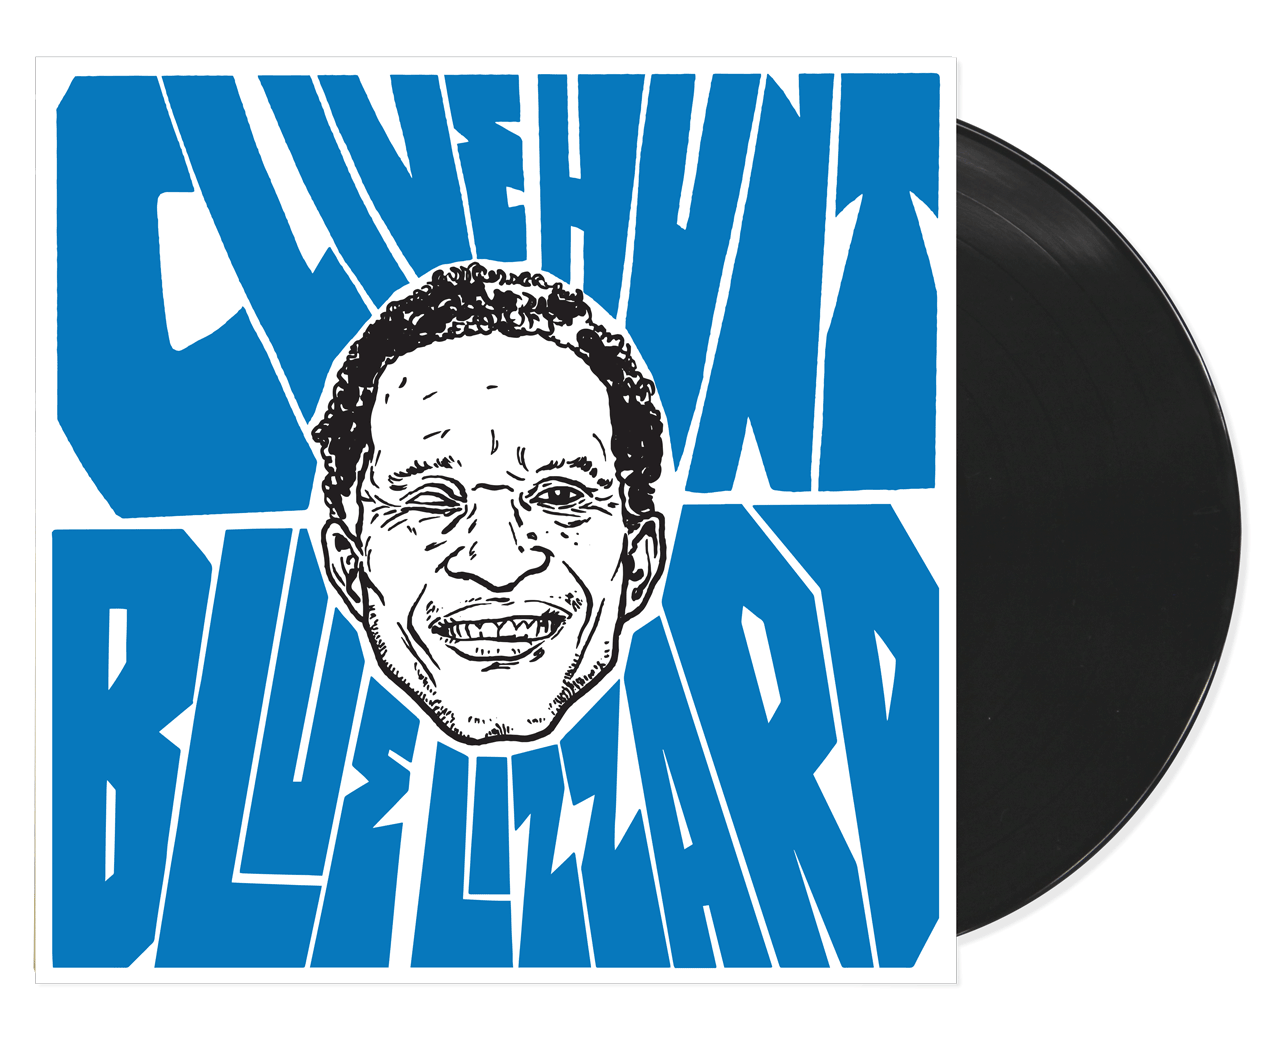 Blue Lizzard (LP Vinyl)